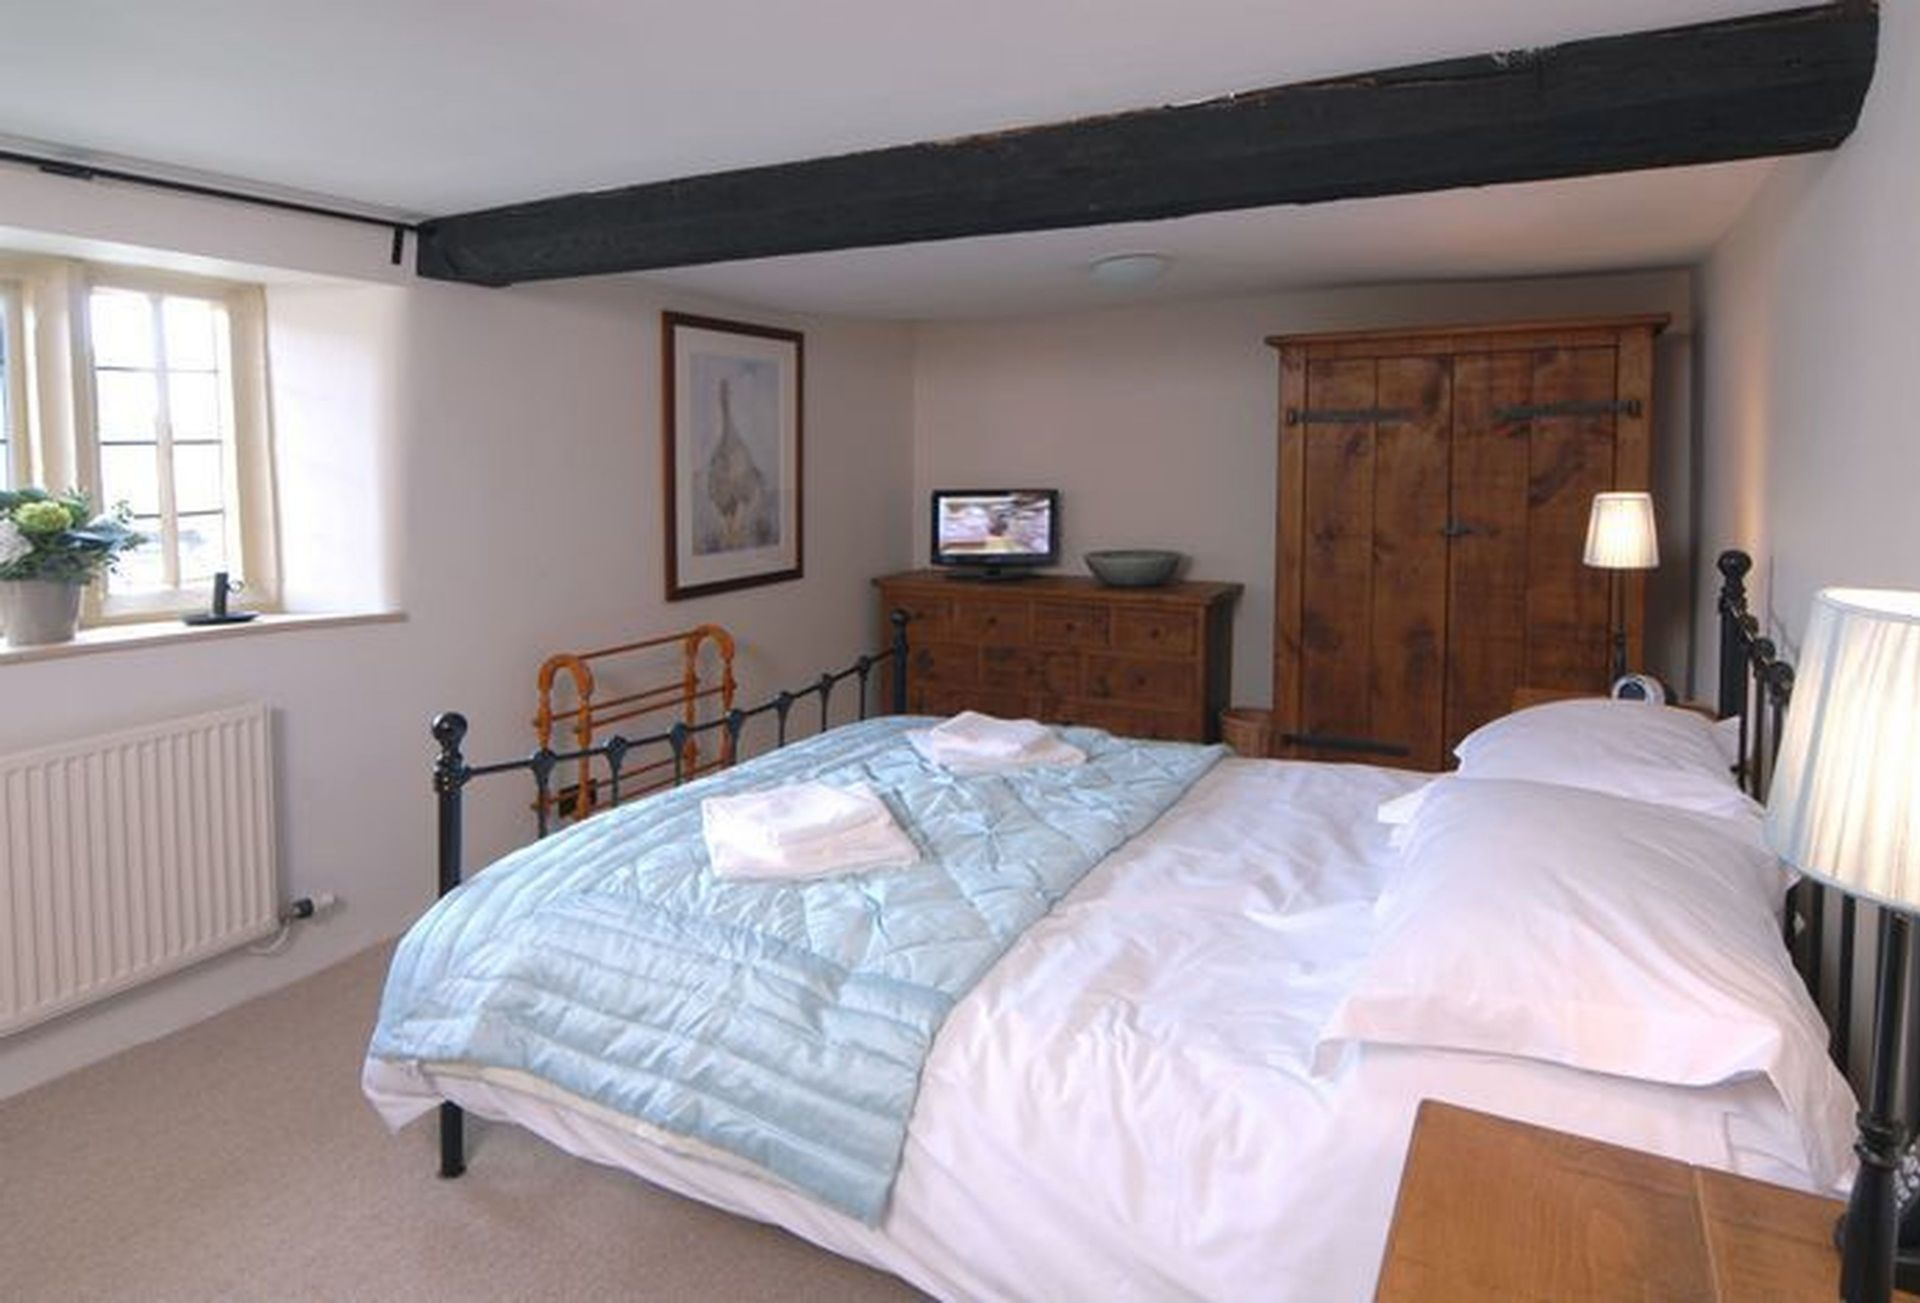 A view of Bedroom One